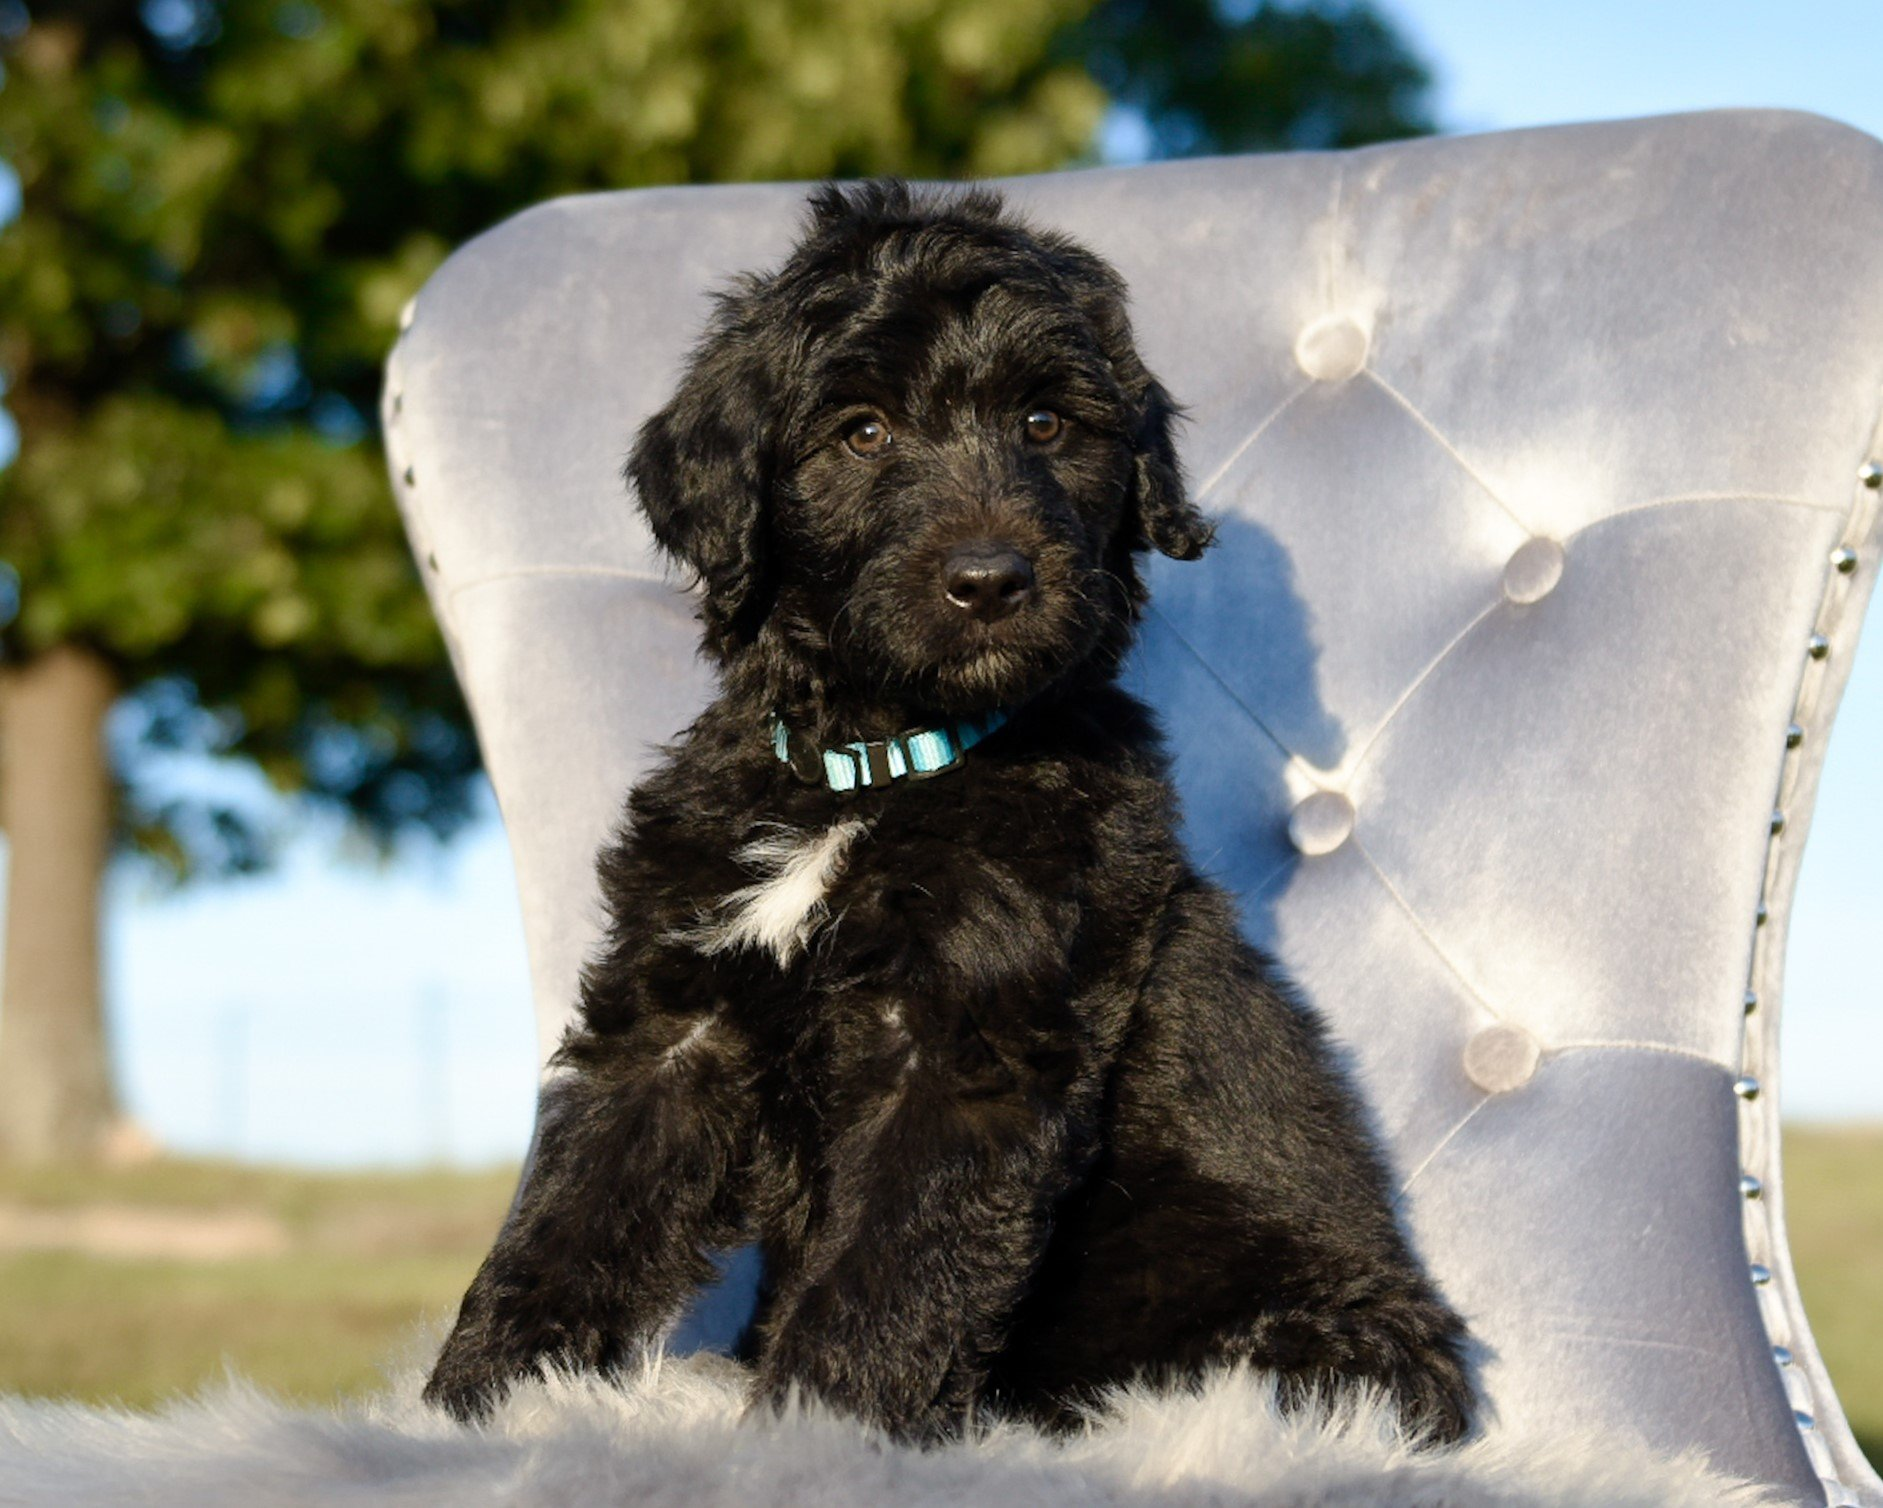 A black and white Bordoodle sitting in a blue chair.